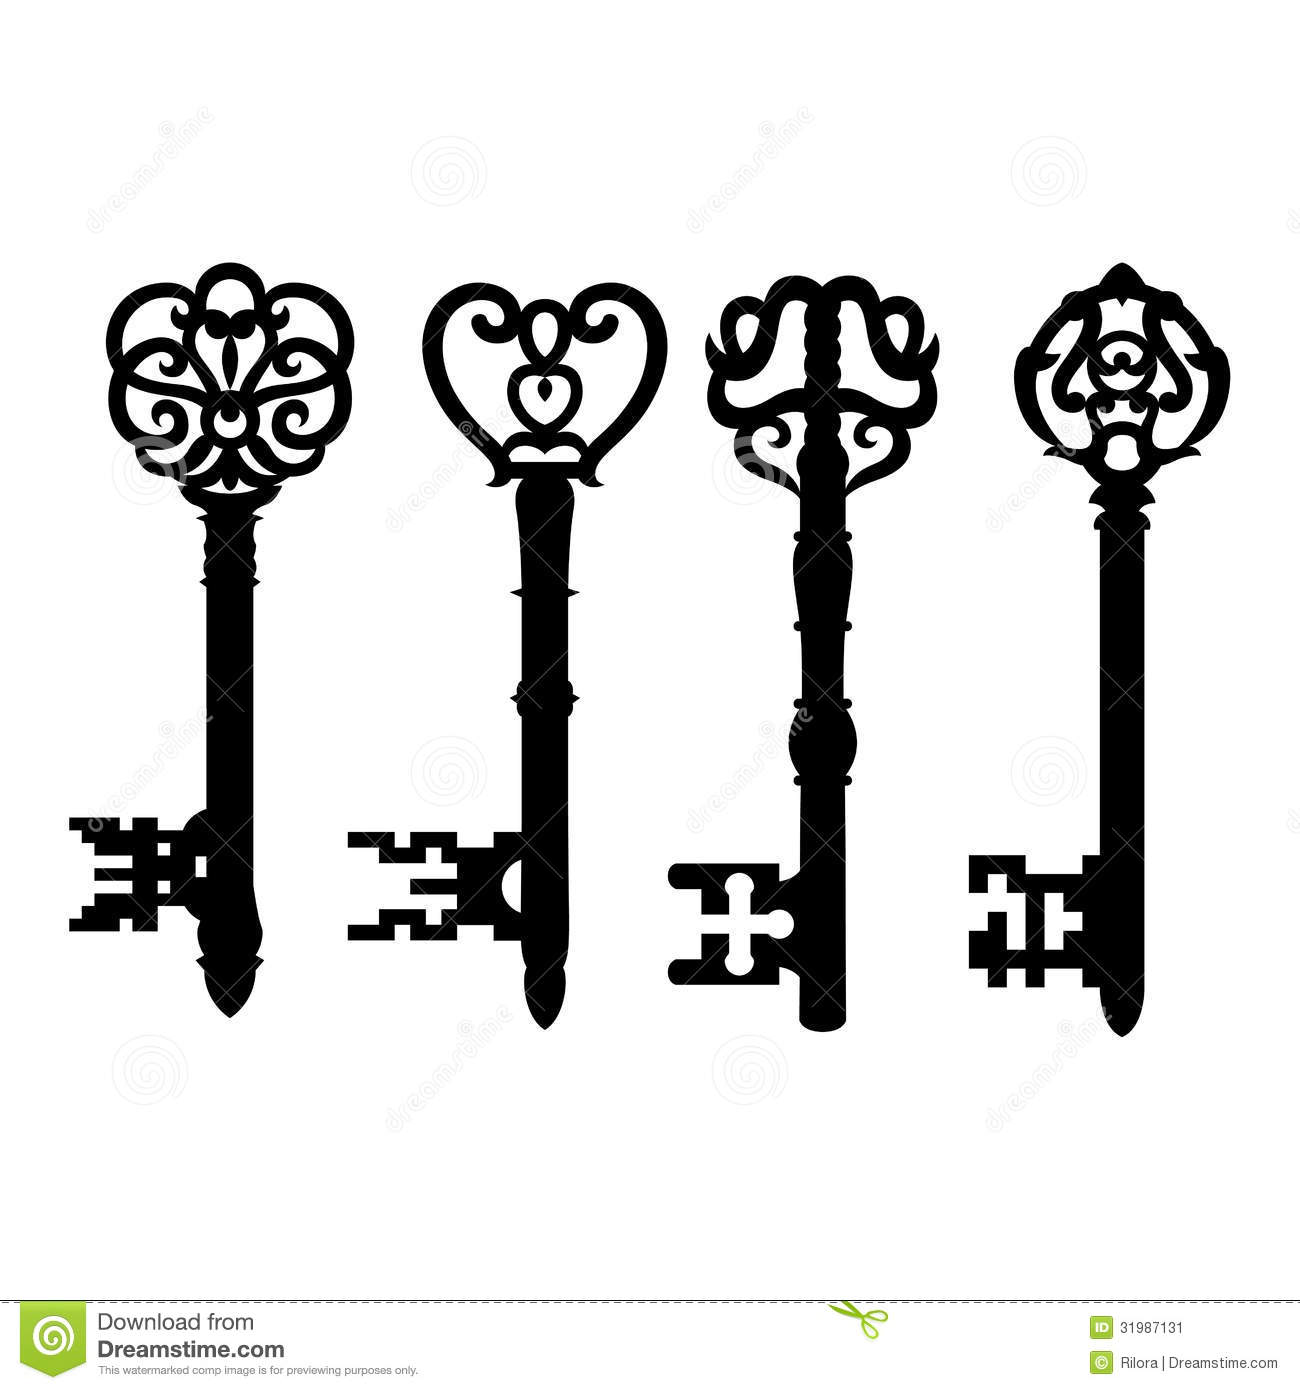 Antique Key Clip Art Old Key Collection Sto...